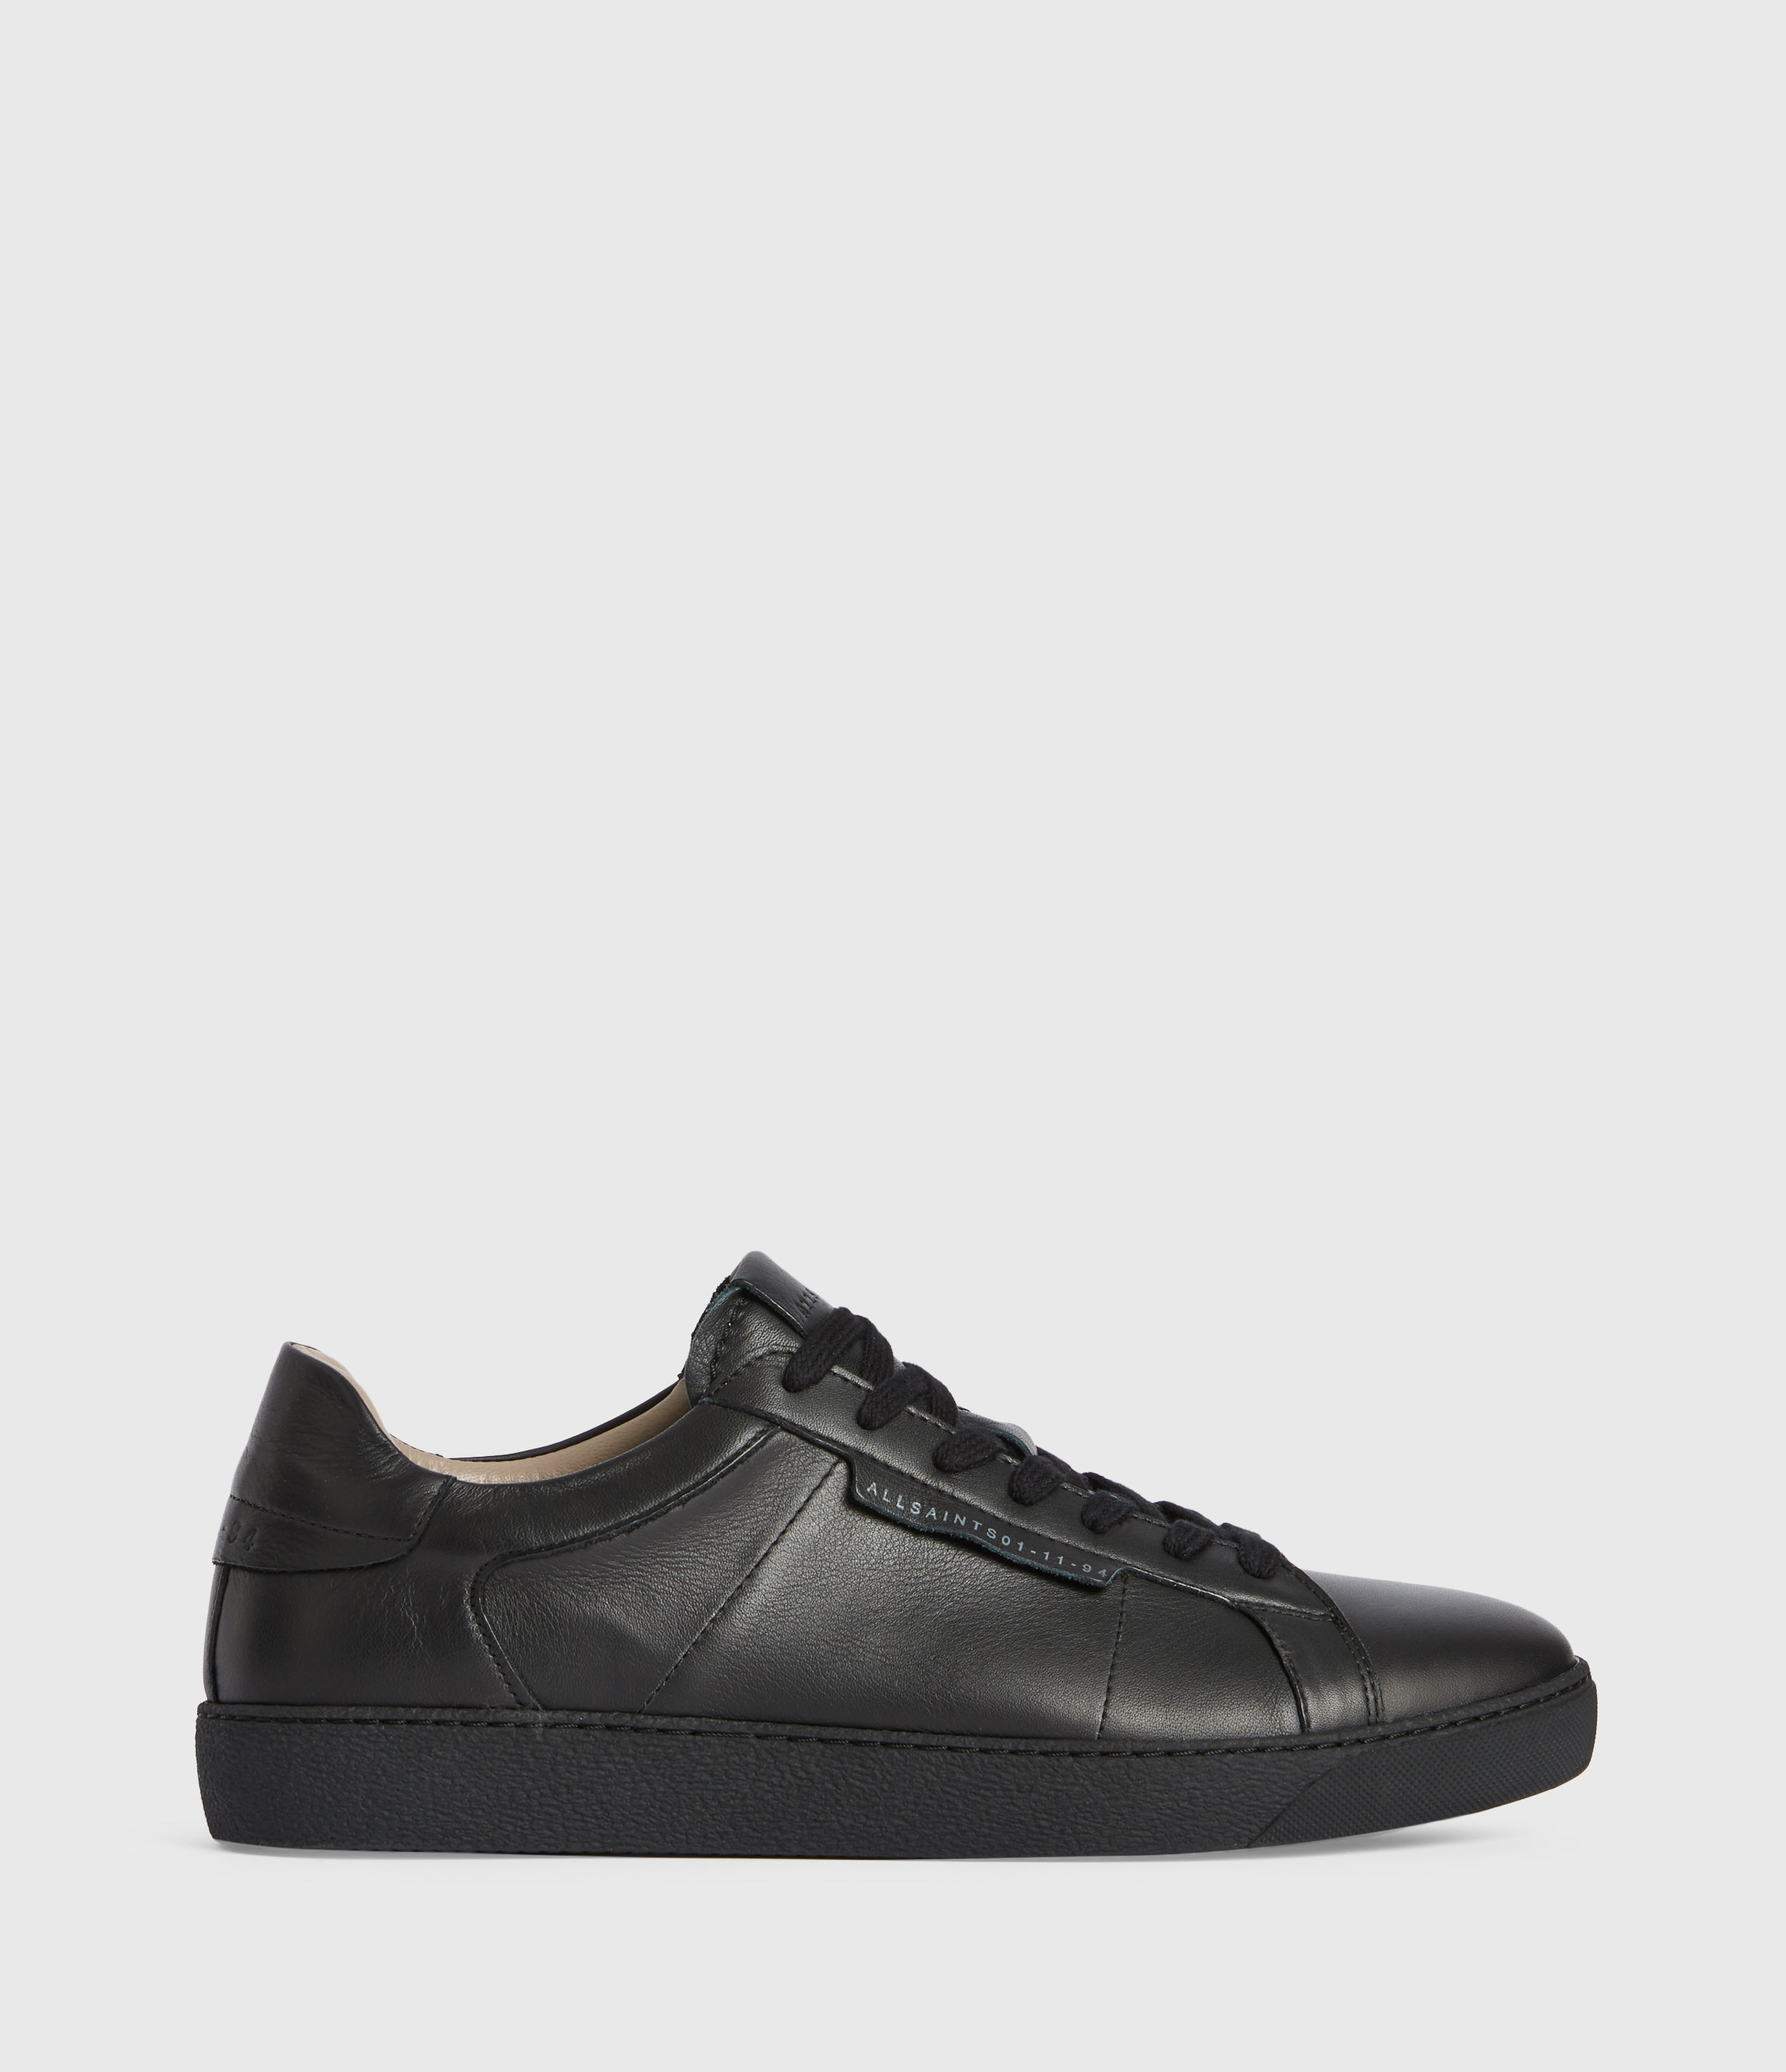 AllSaints Mens Sheer Low Top Leather Trainers, Black, Size: UK 10/US 11/EU 44